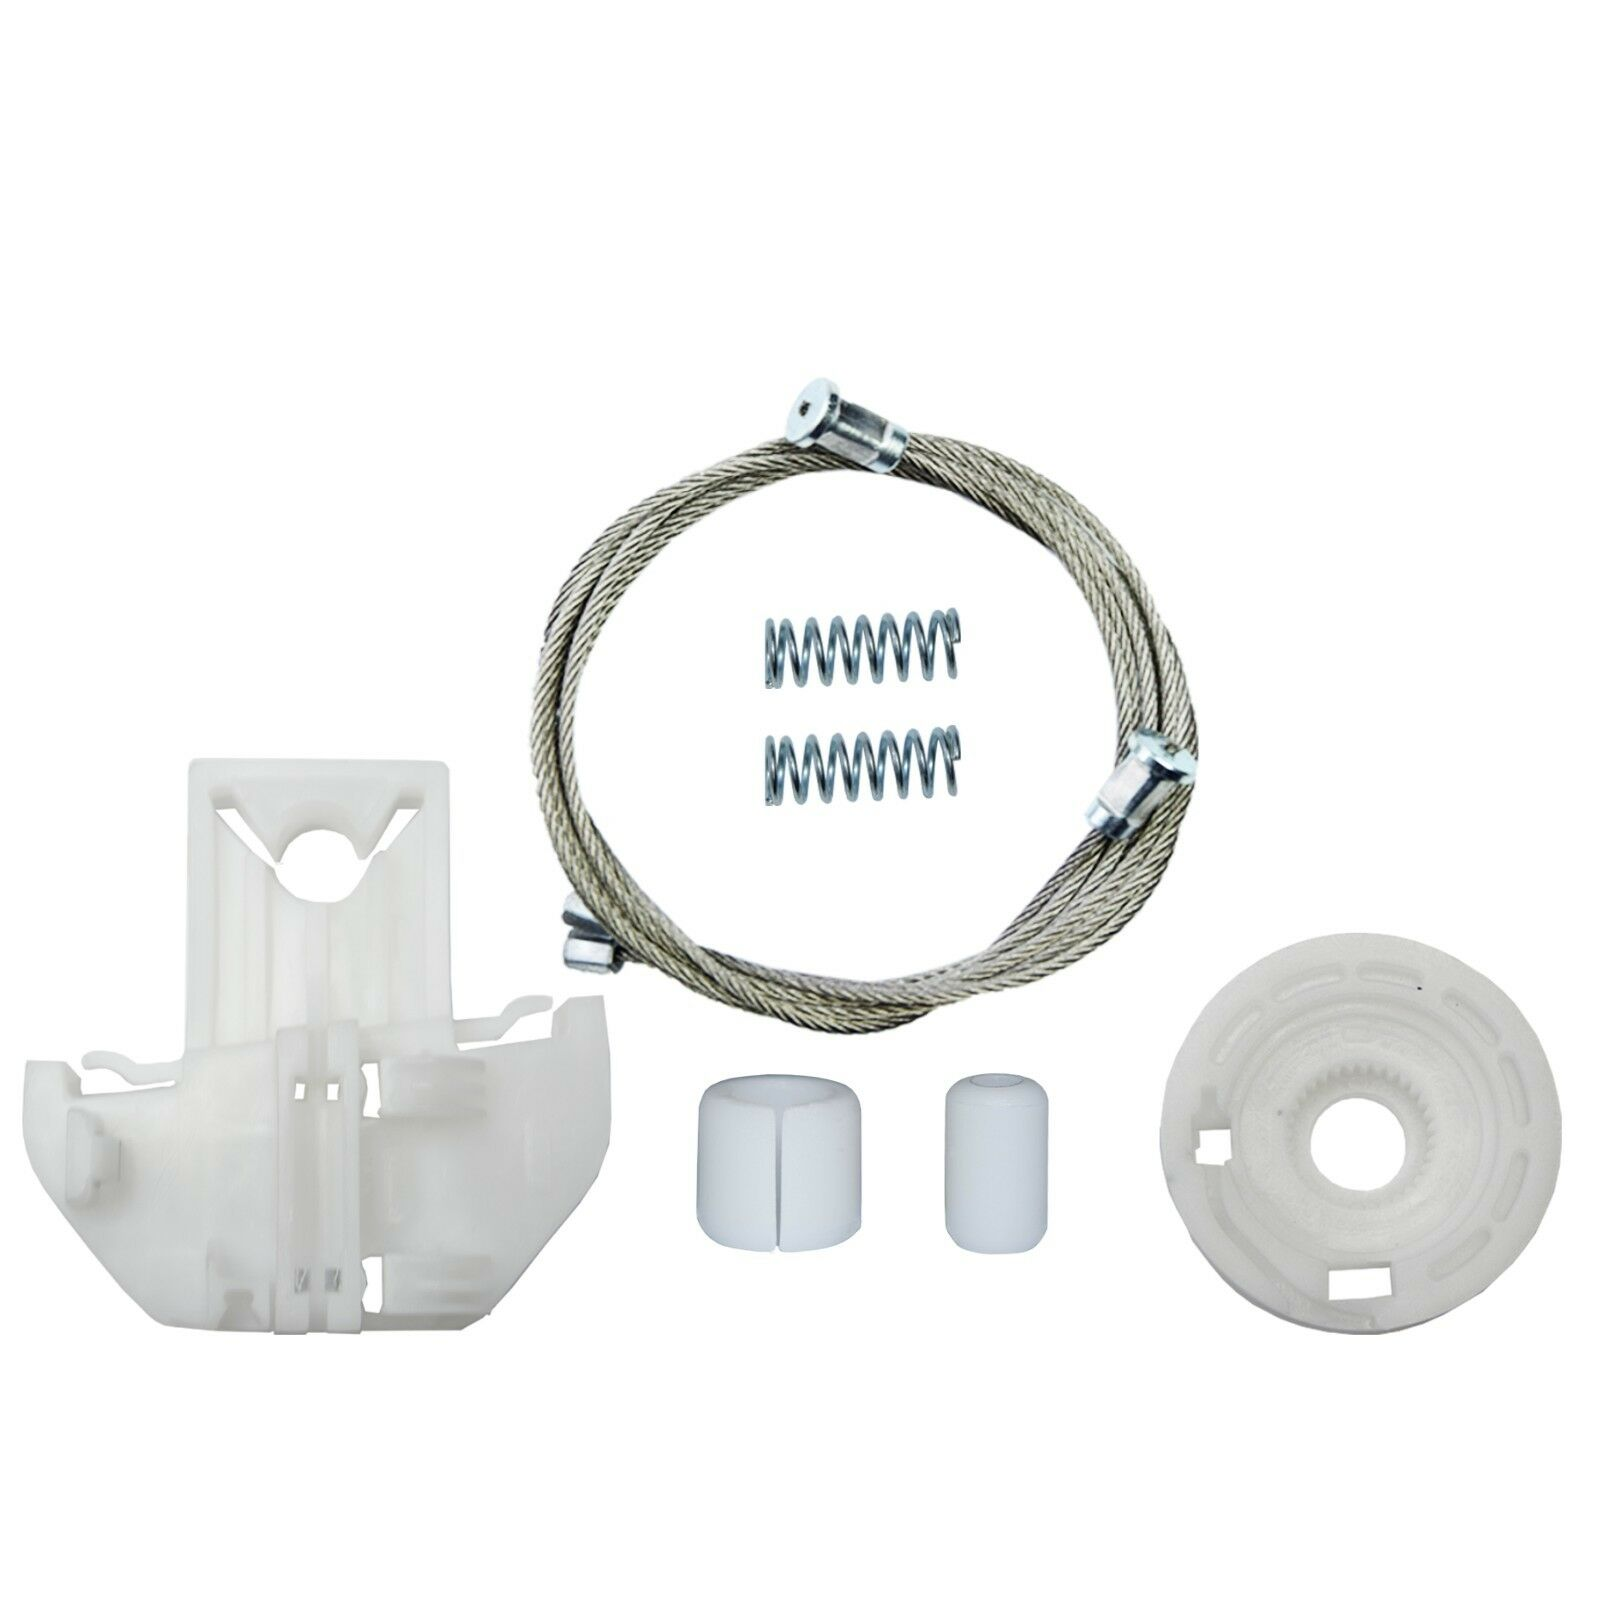 Ford Focus Window Regulator Repair Kit Rear Right 1 of 1FREE Shipping ...